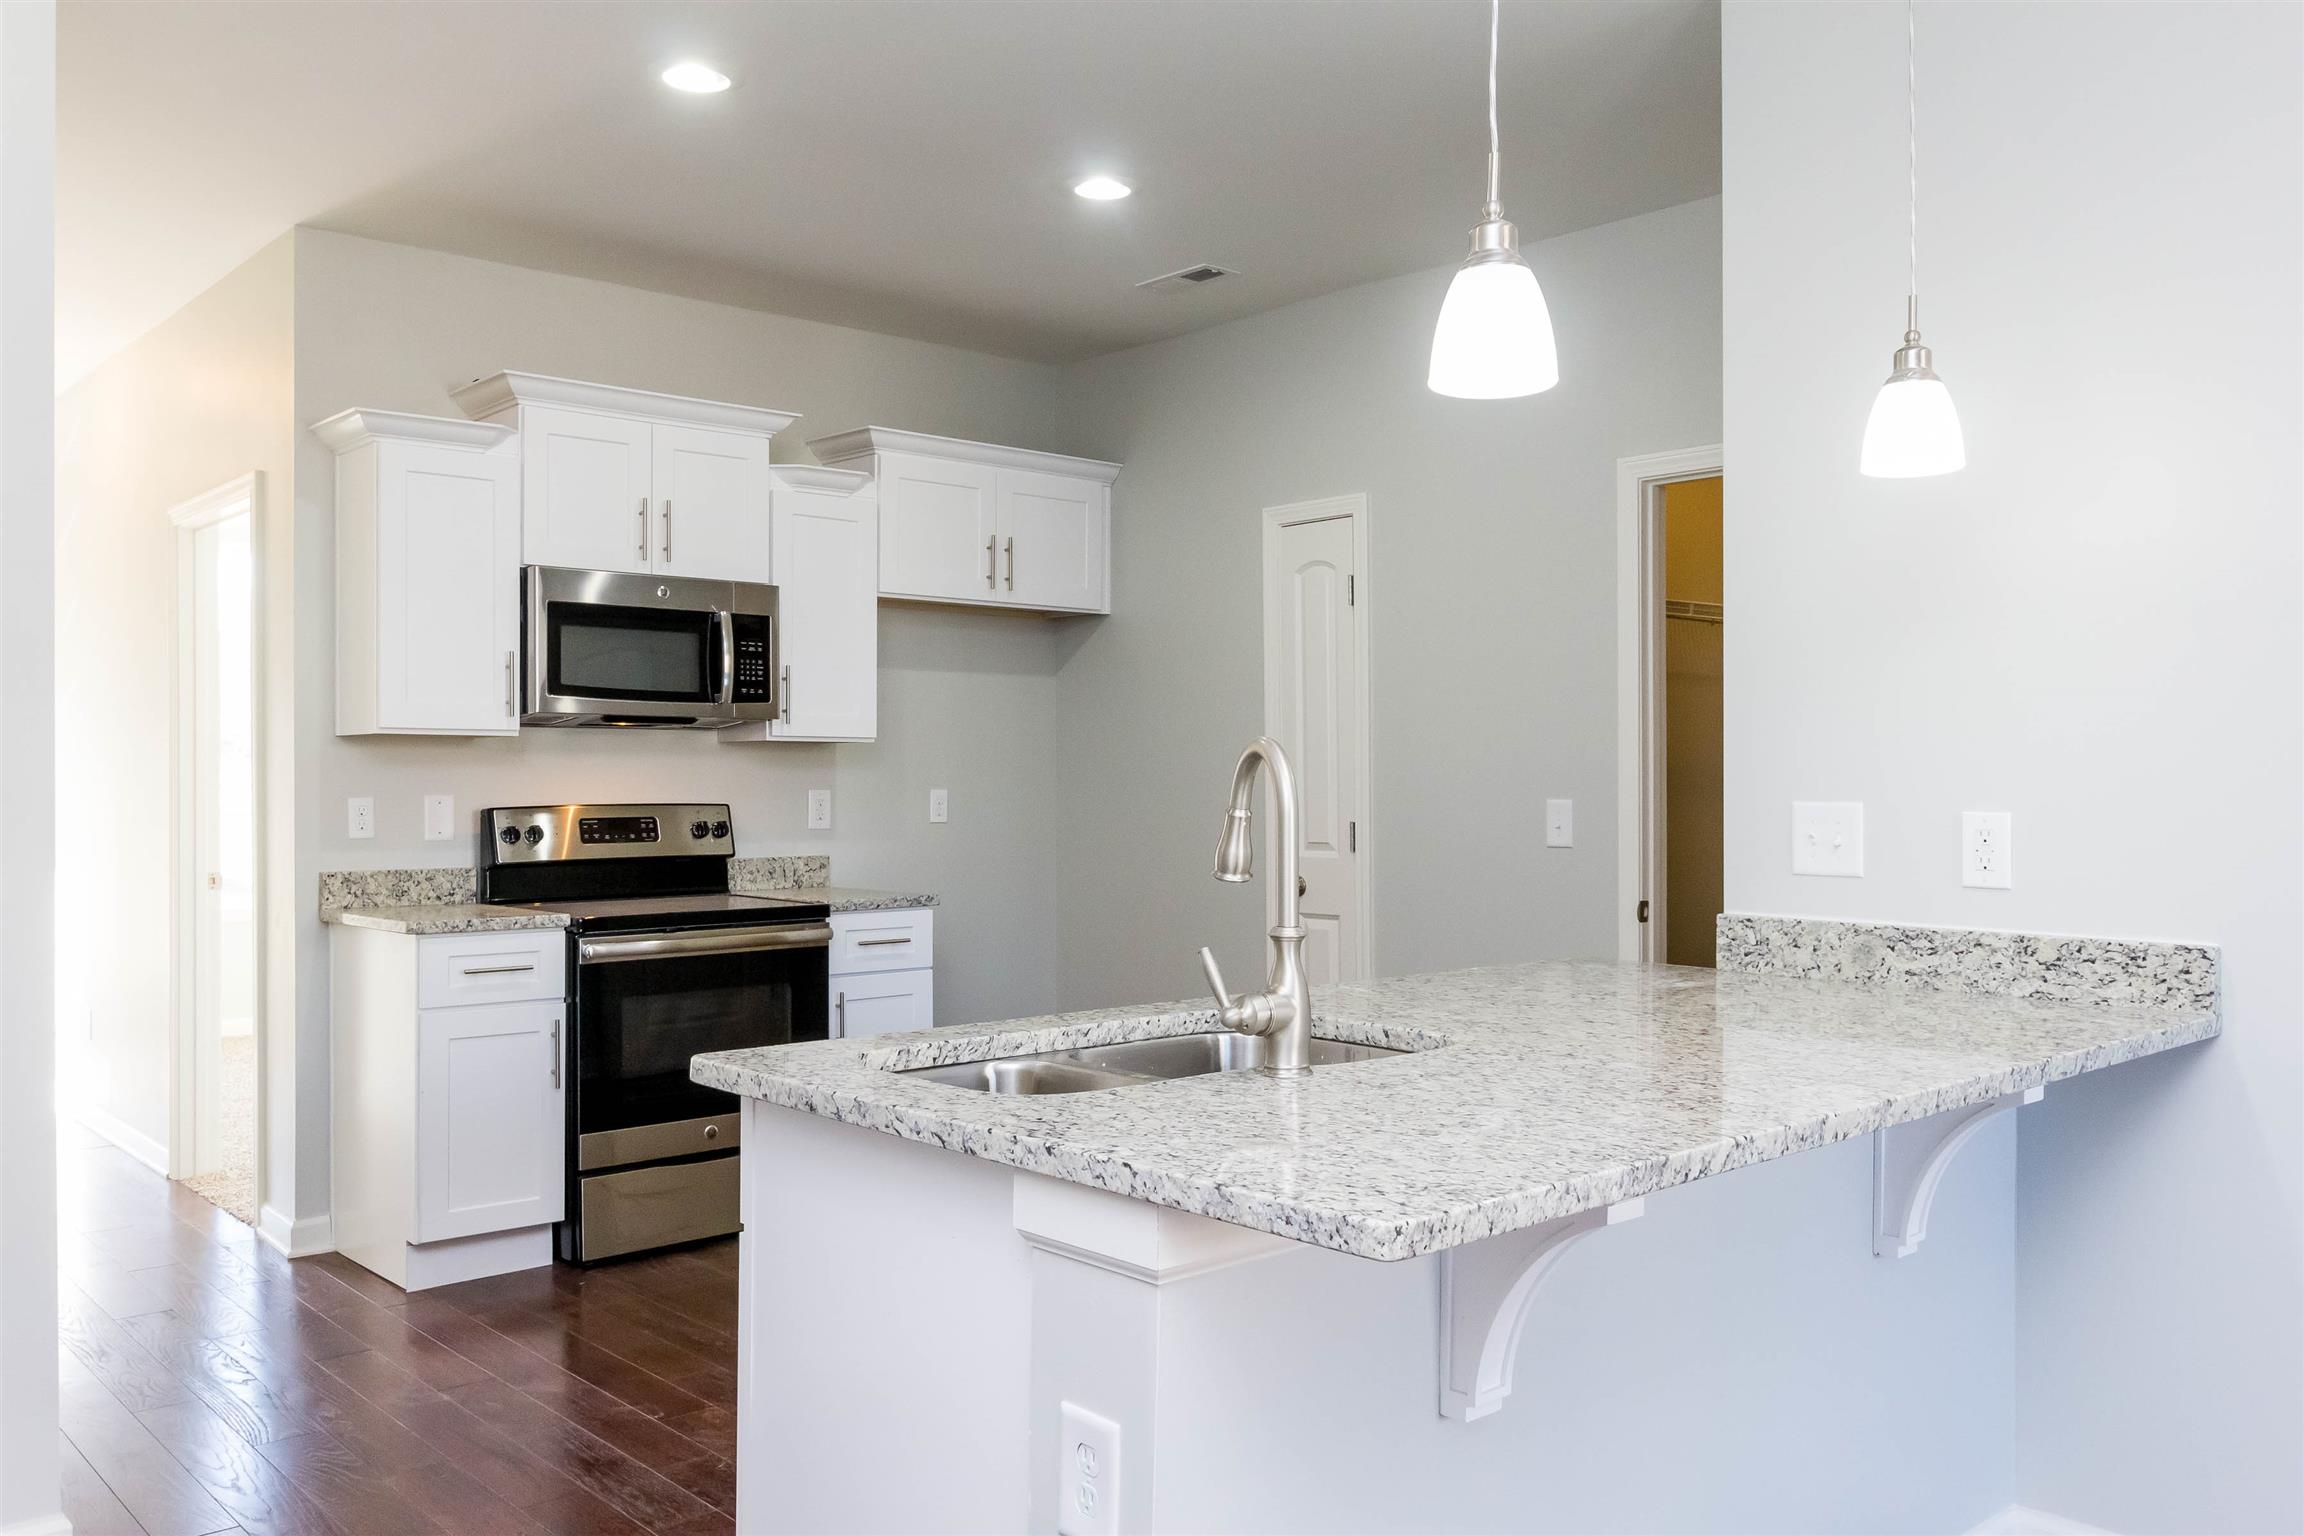 1602 Villa Cir, one of homes for sale in Lebanon